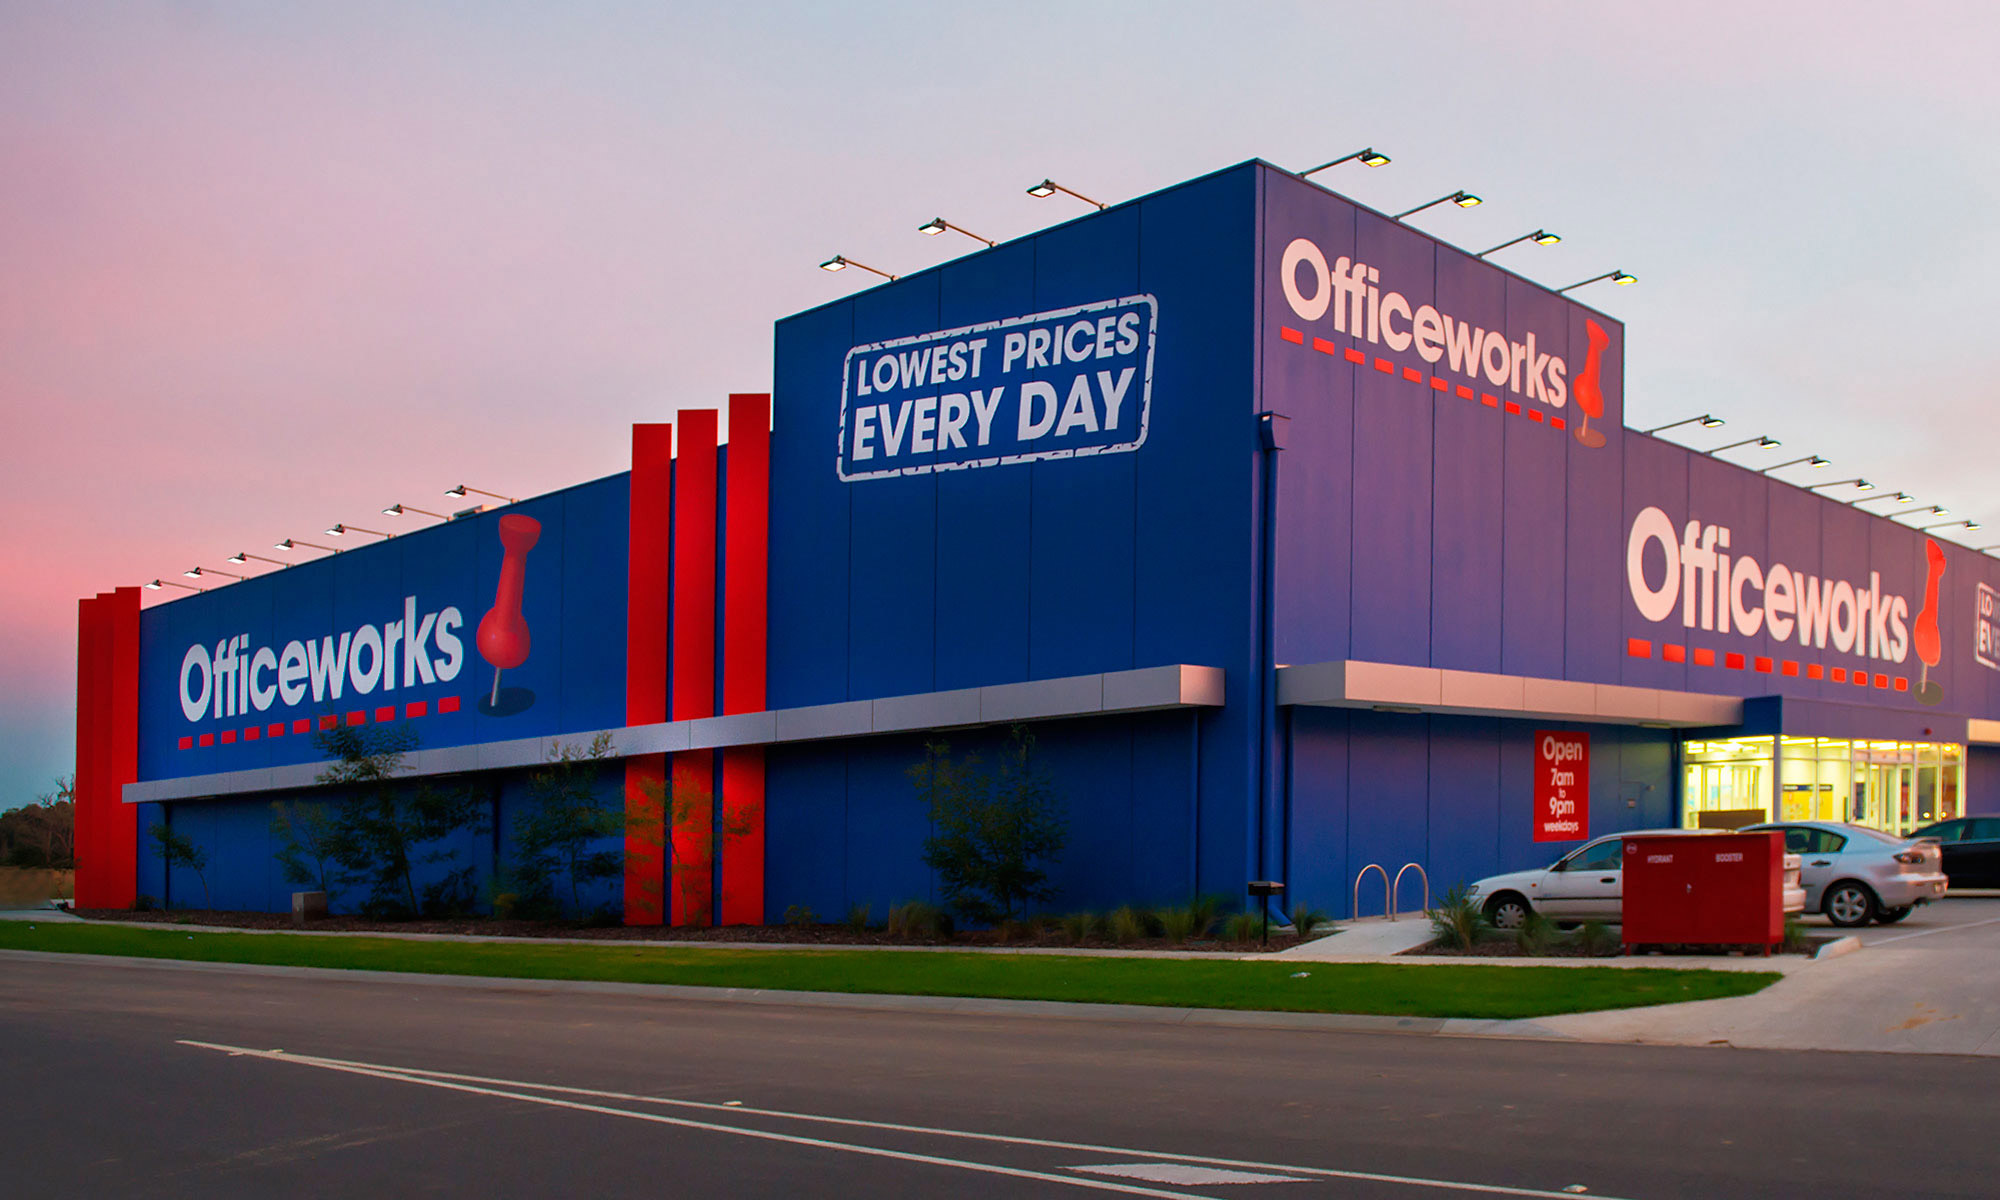 officeworks_2